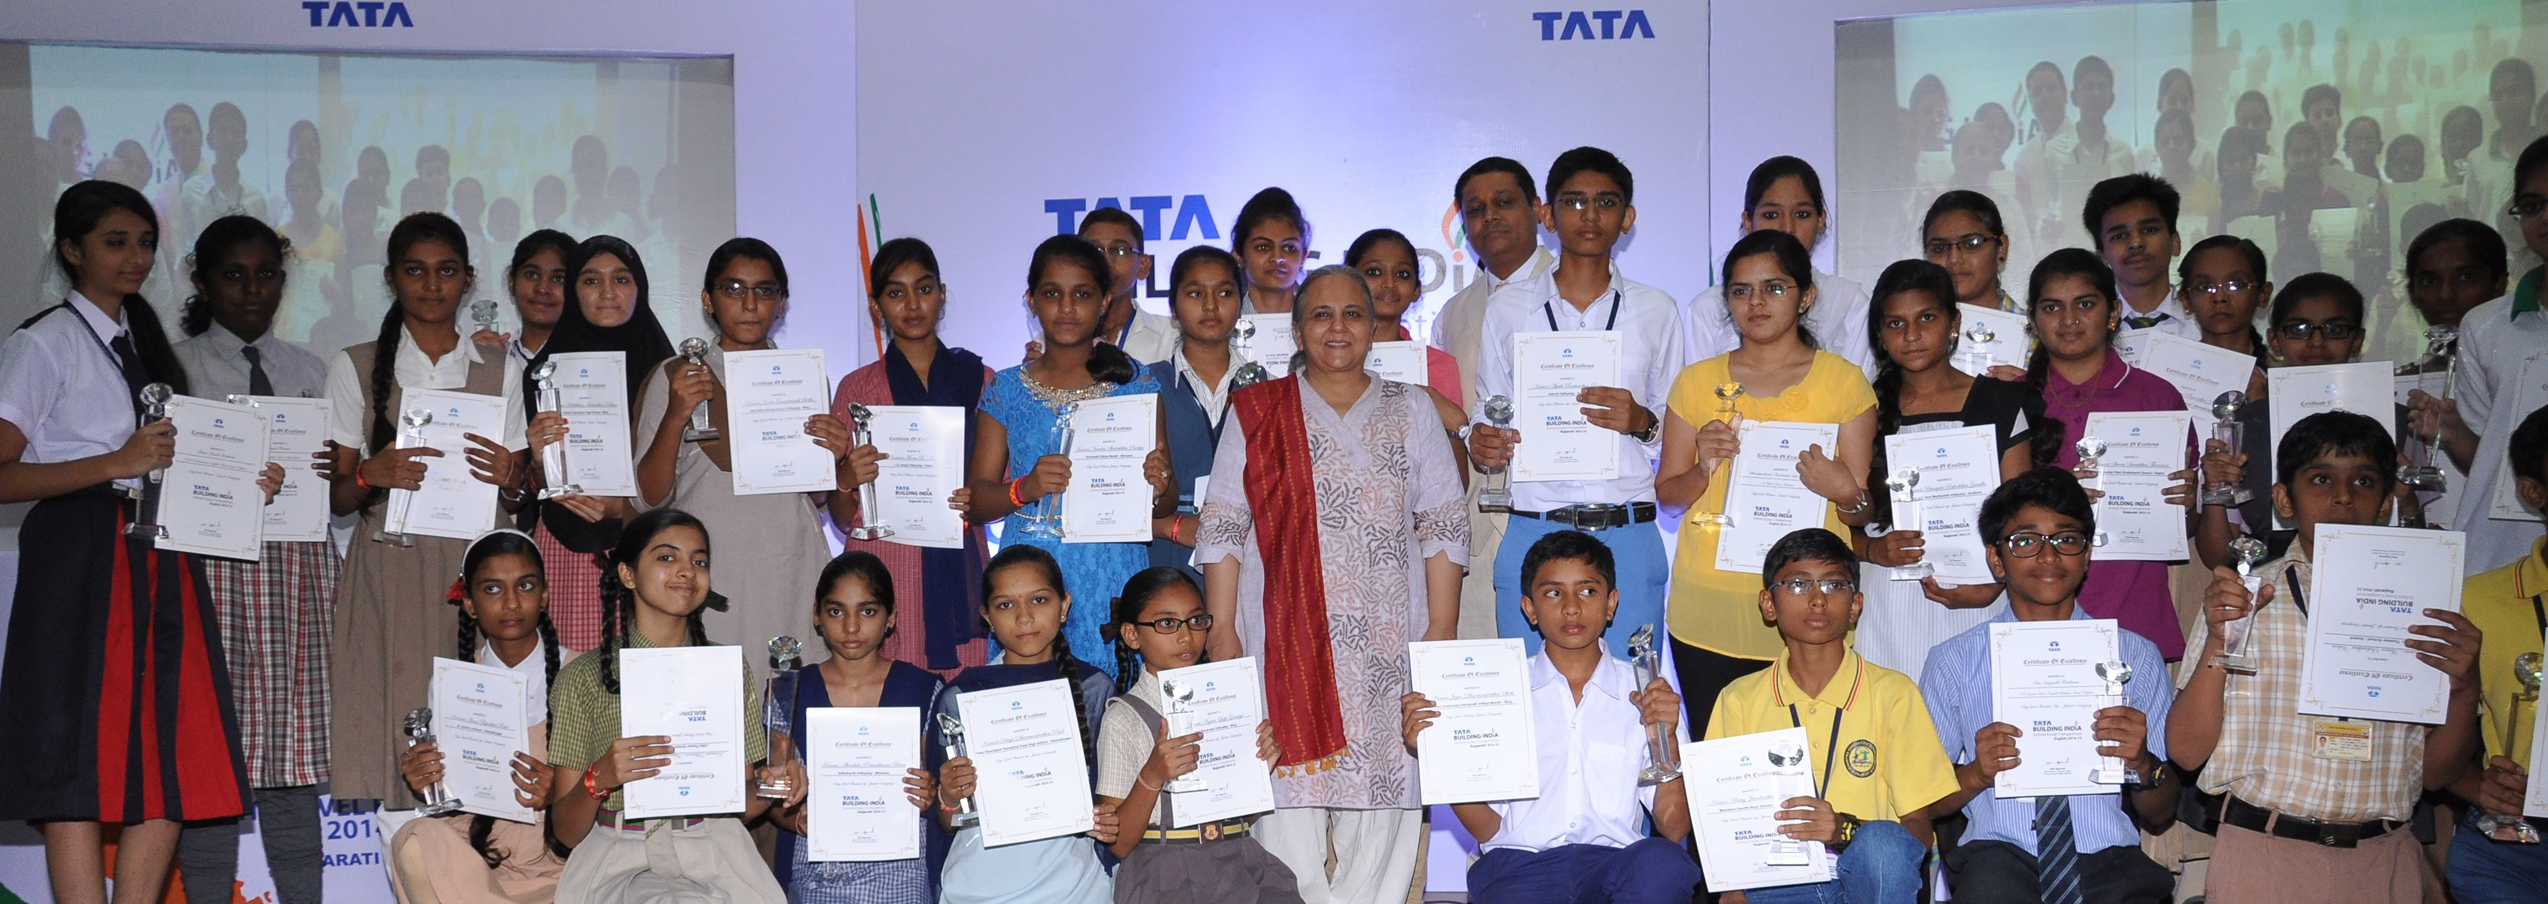 tata building india school essay competition english 2014-15